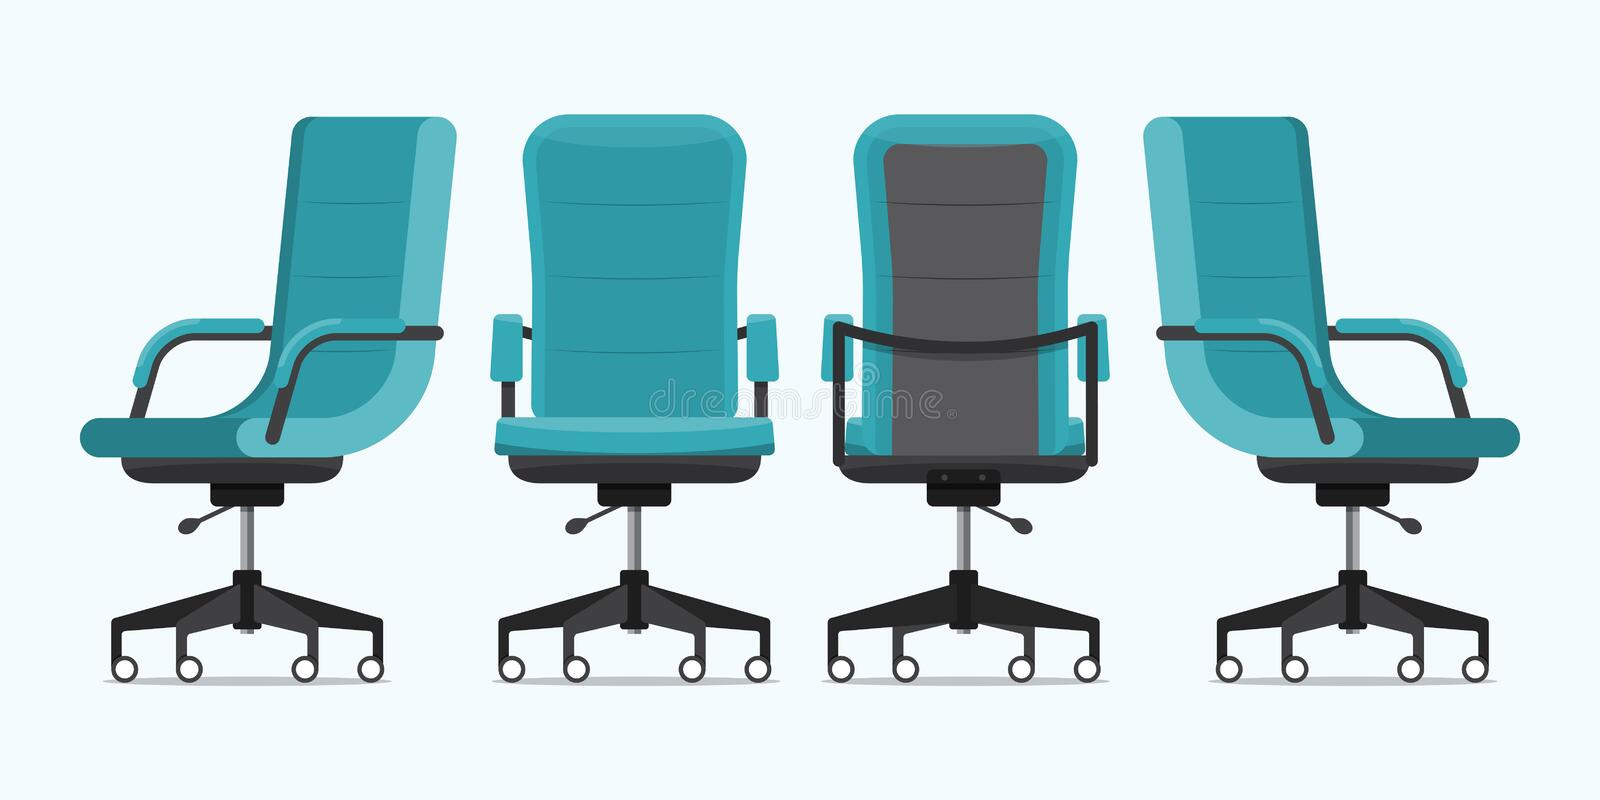 Office chair or desk chair in various points of view. Armchair or stool in front, back, side angles. Blue furniture for Interior stock illustration